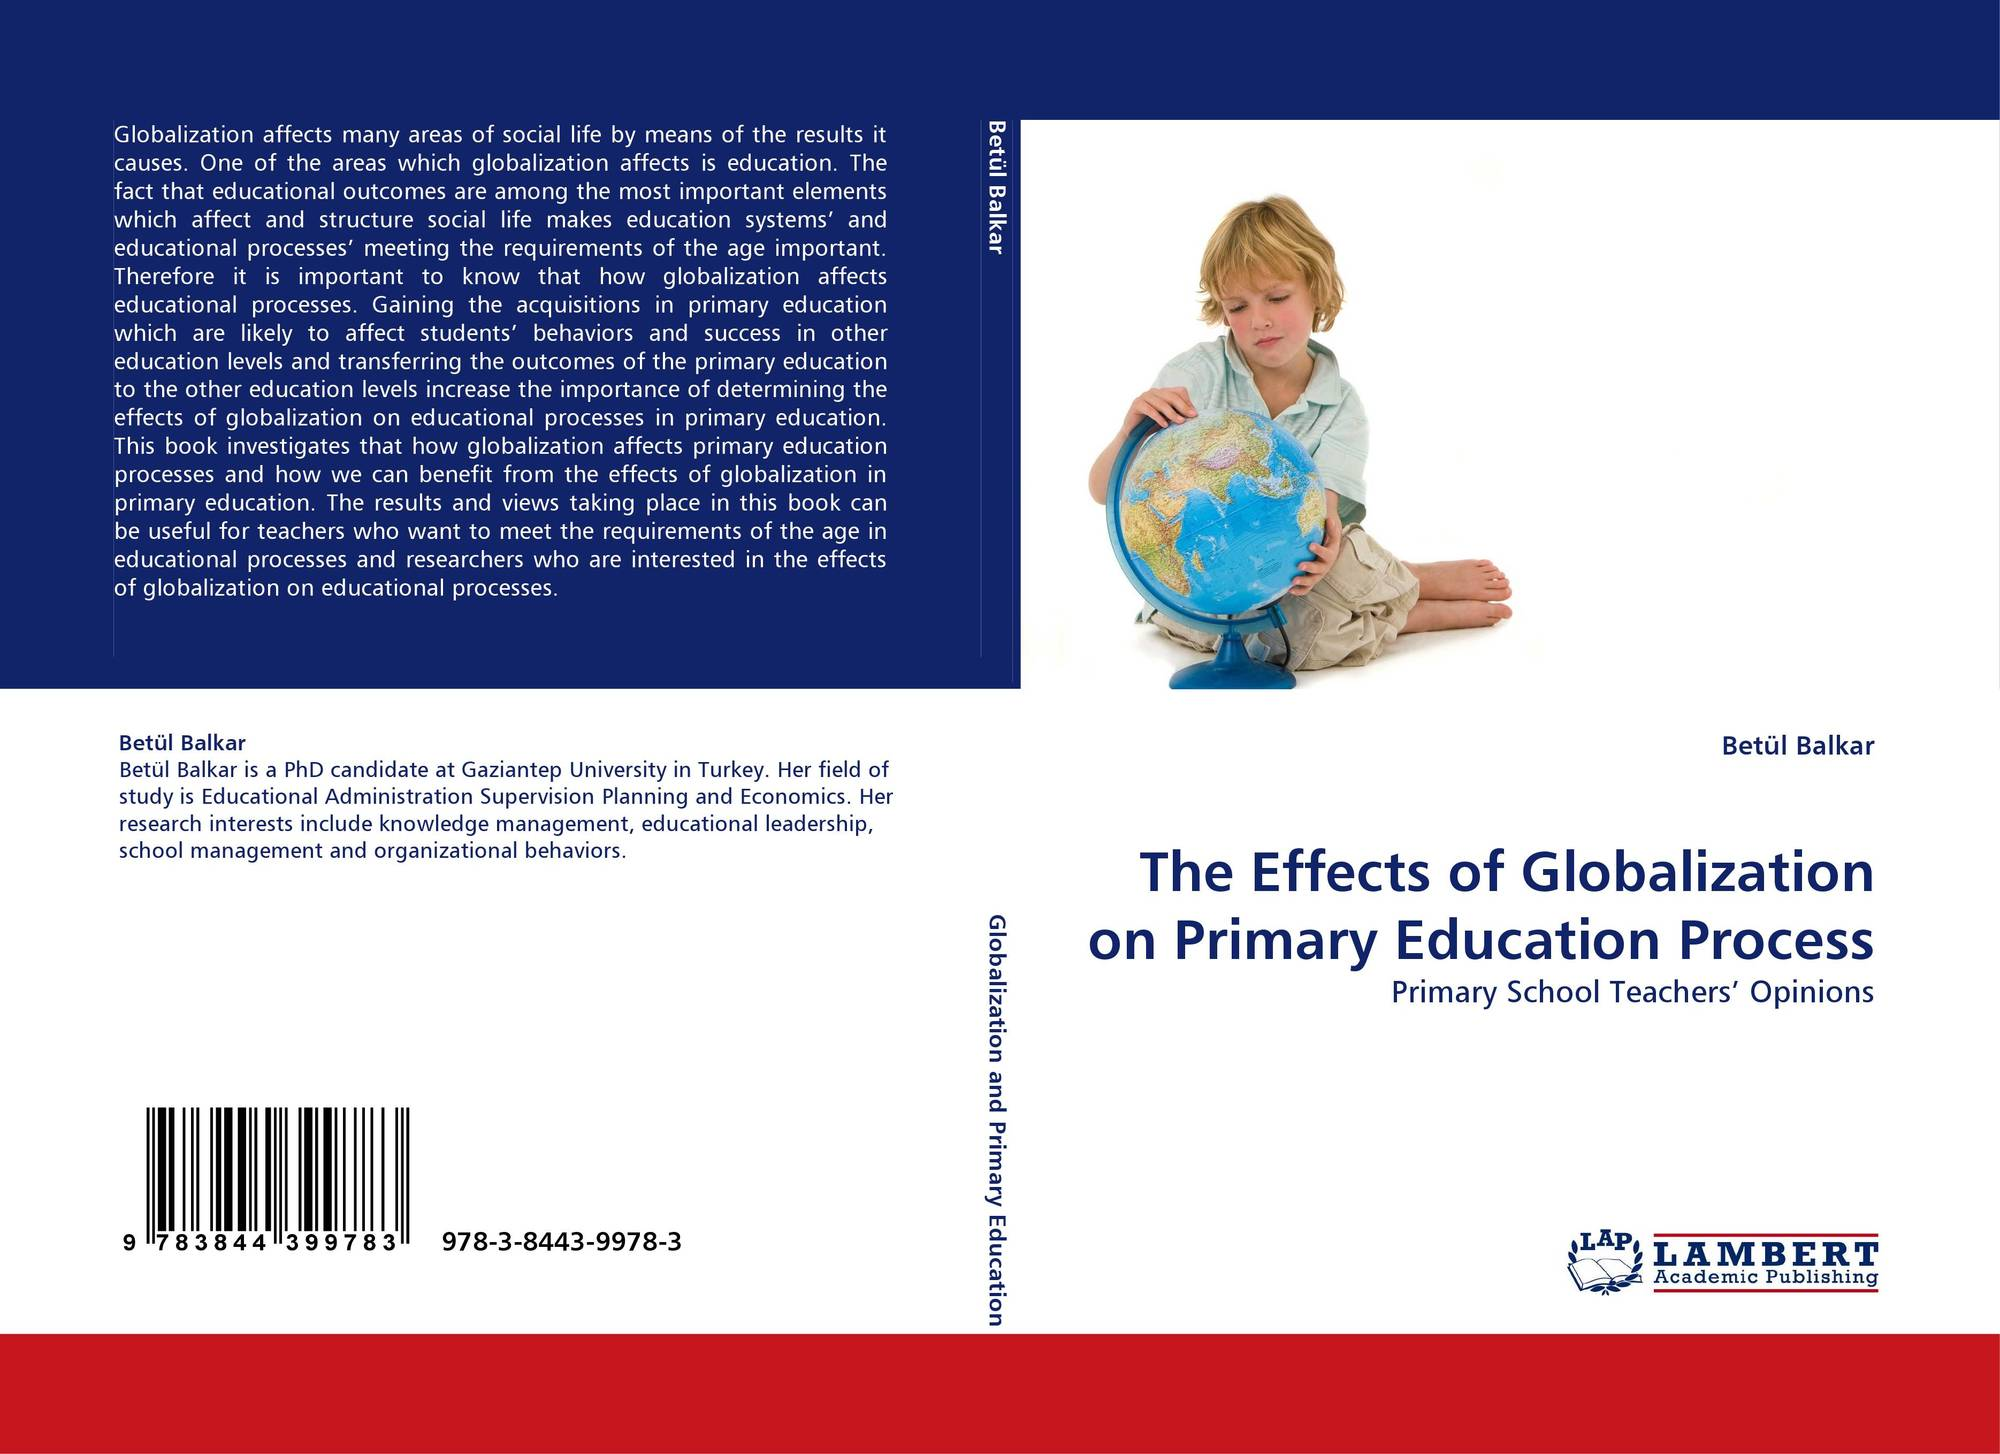 the process of globalization the Discover how globalization effects governments and investors both in a positive and negative way, as well as some overall trends to consider the balance globalization and its impact on economic growth menu search go go personal finance budgeting retirement decisions home buying credit.